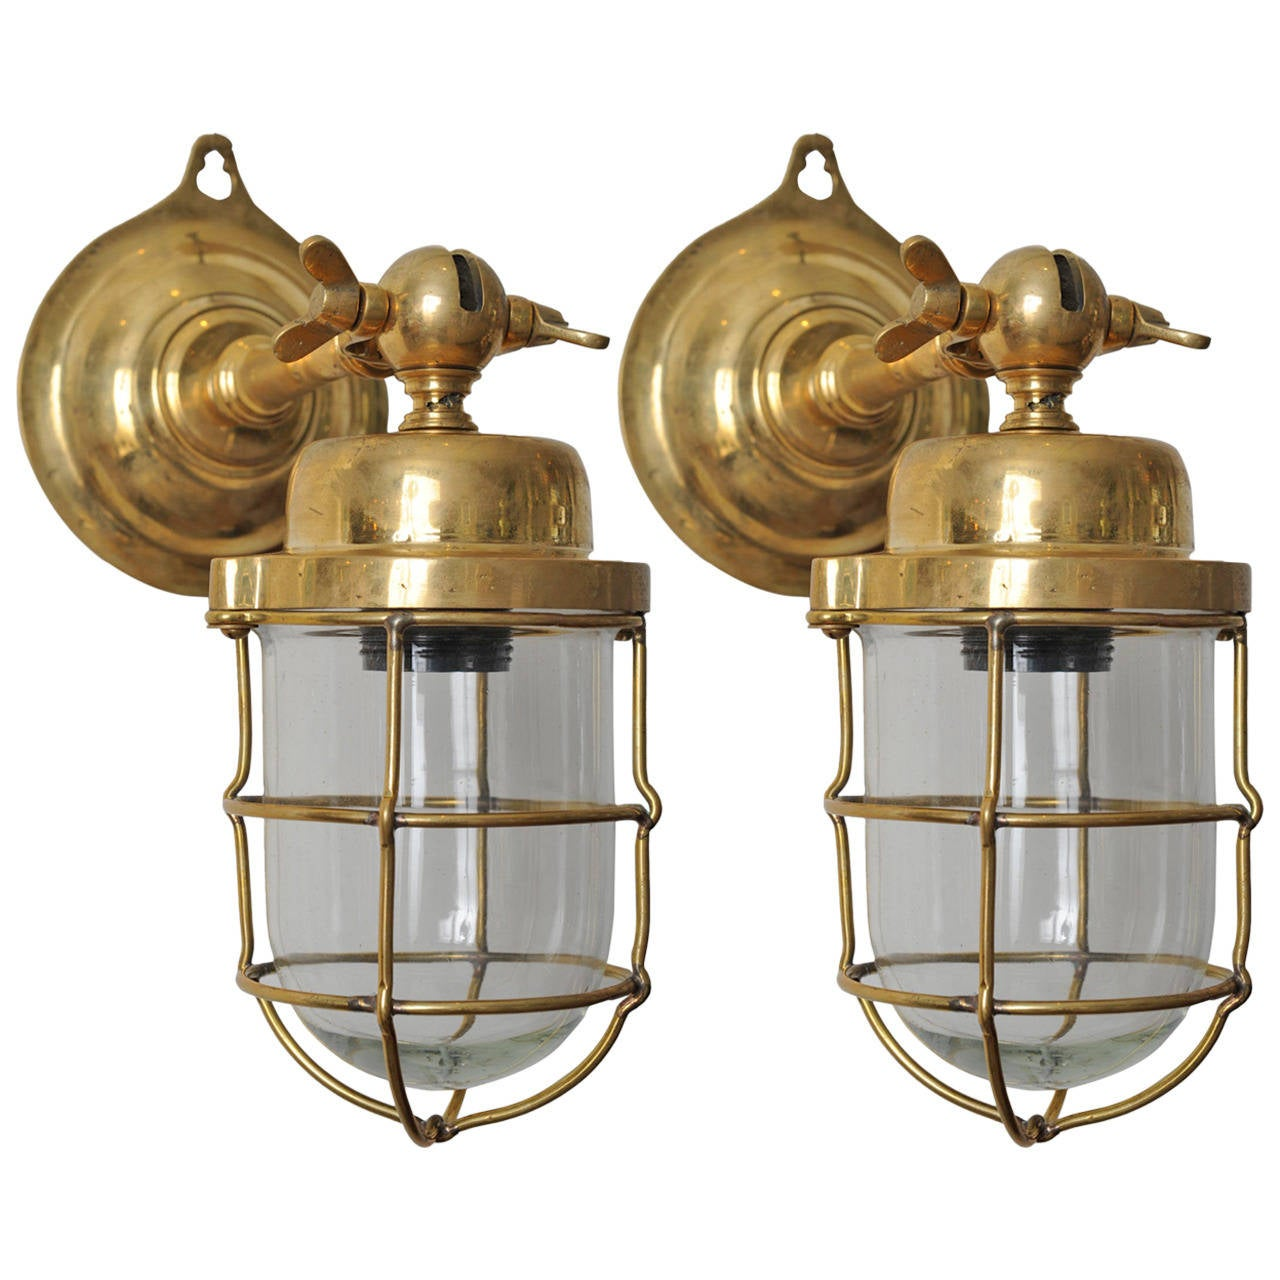 Pair of Nautical Antique Ship Passageway Lights in Brass, Mid-Century at 1stdibs